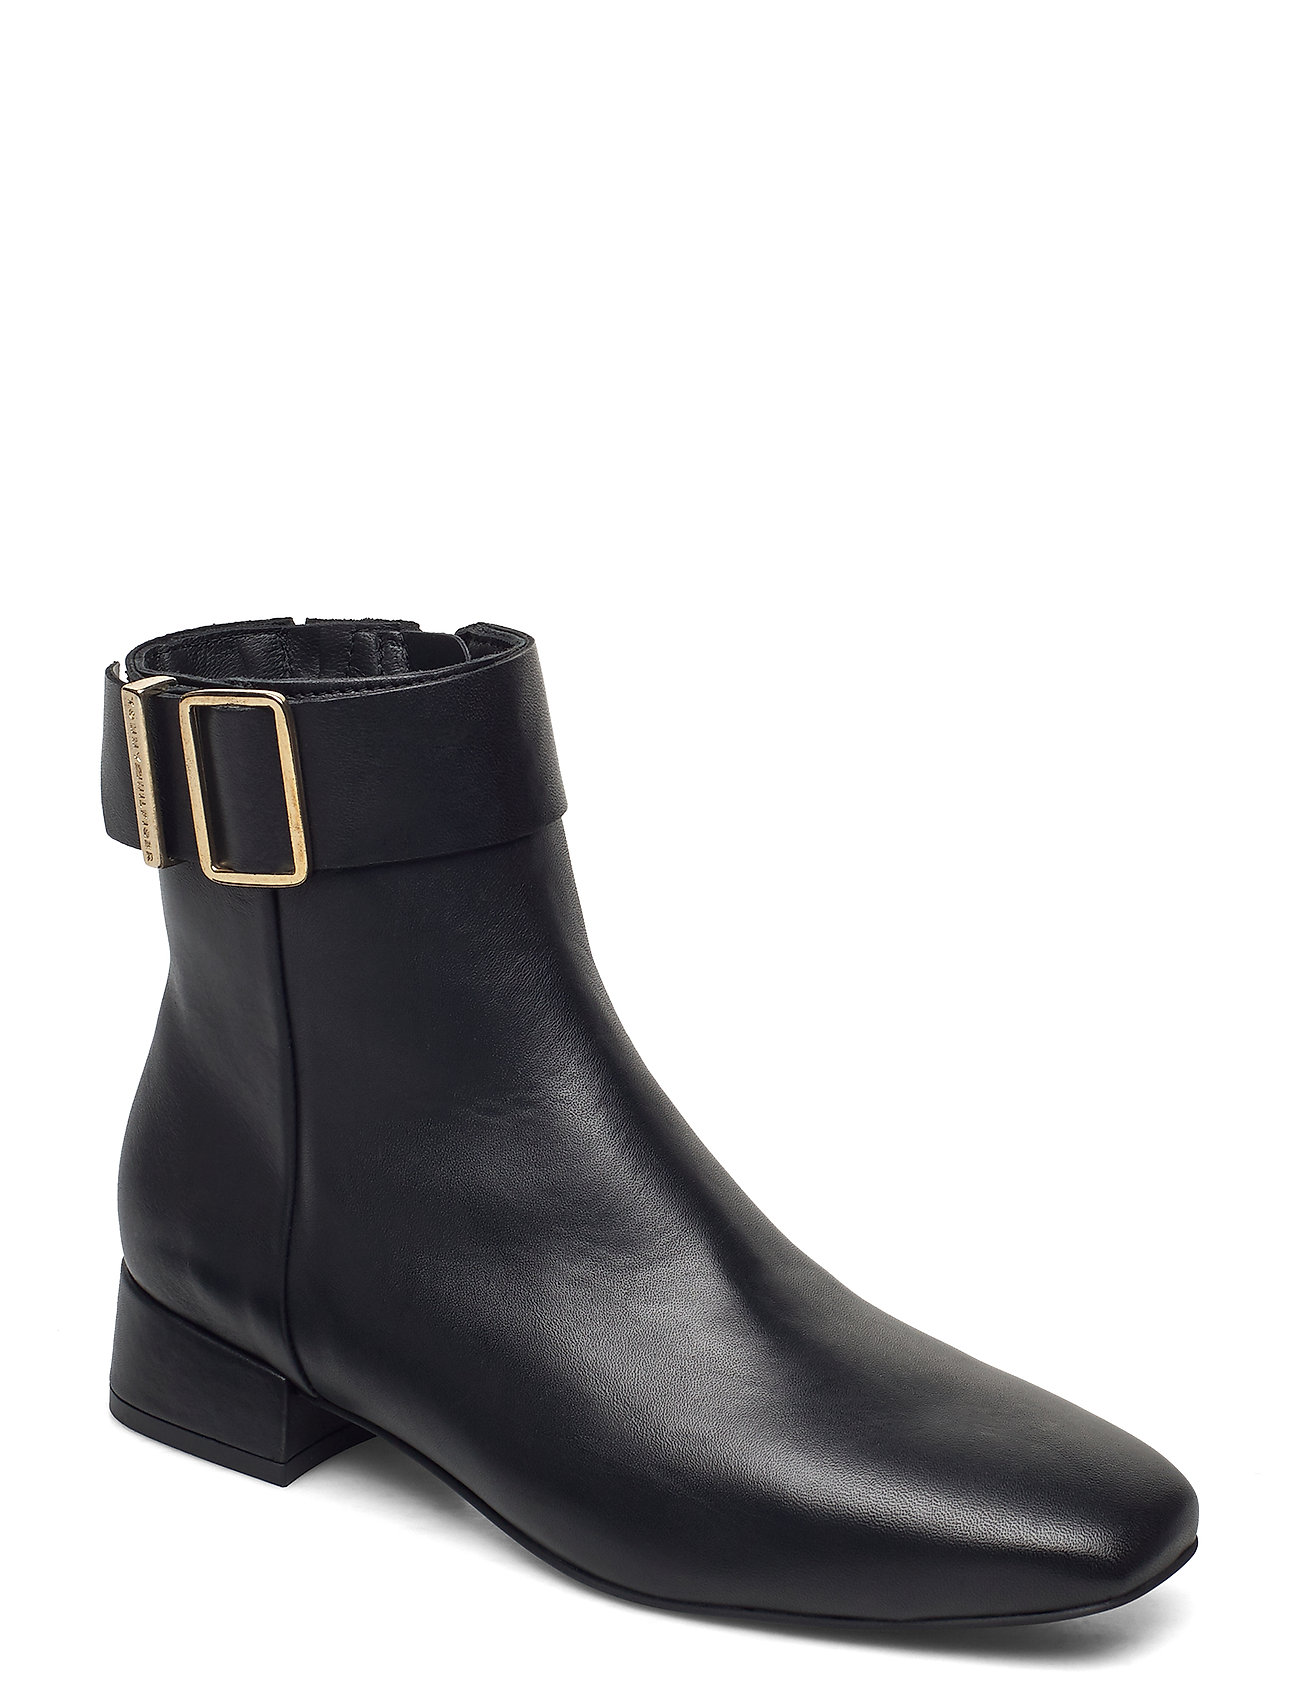 Image of Leather Square Toe Mid Heel Boot Shoes Boots Ankle Boots Ankle Boot - Flat Sort Tommy Hilfiger (3448709299)